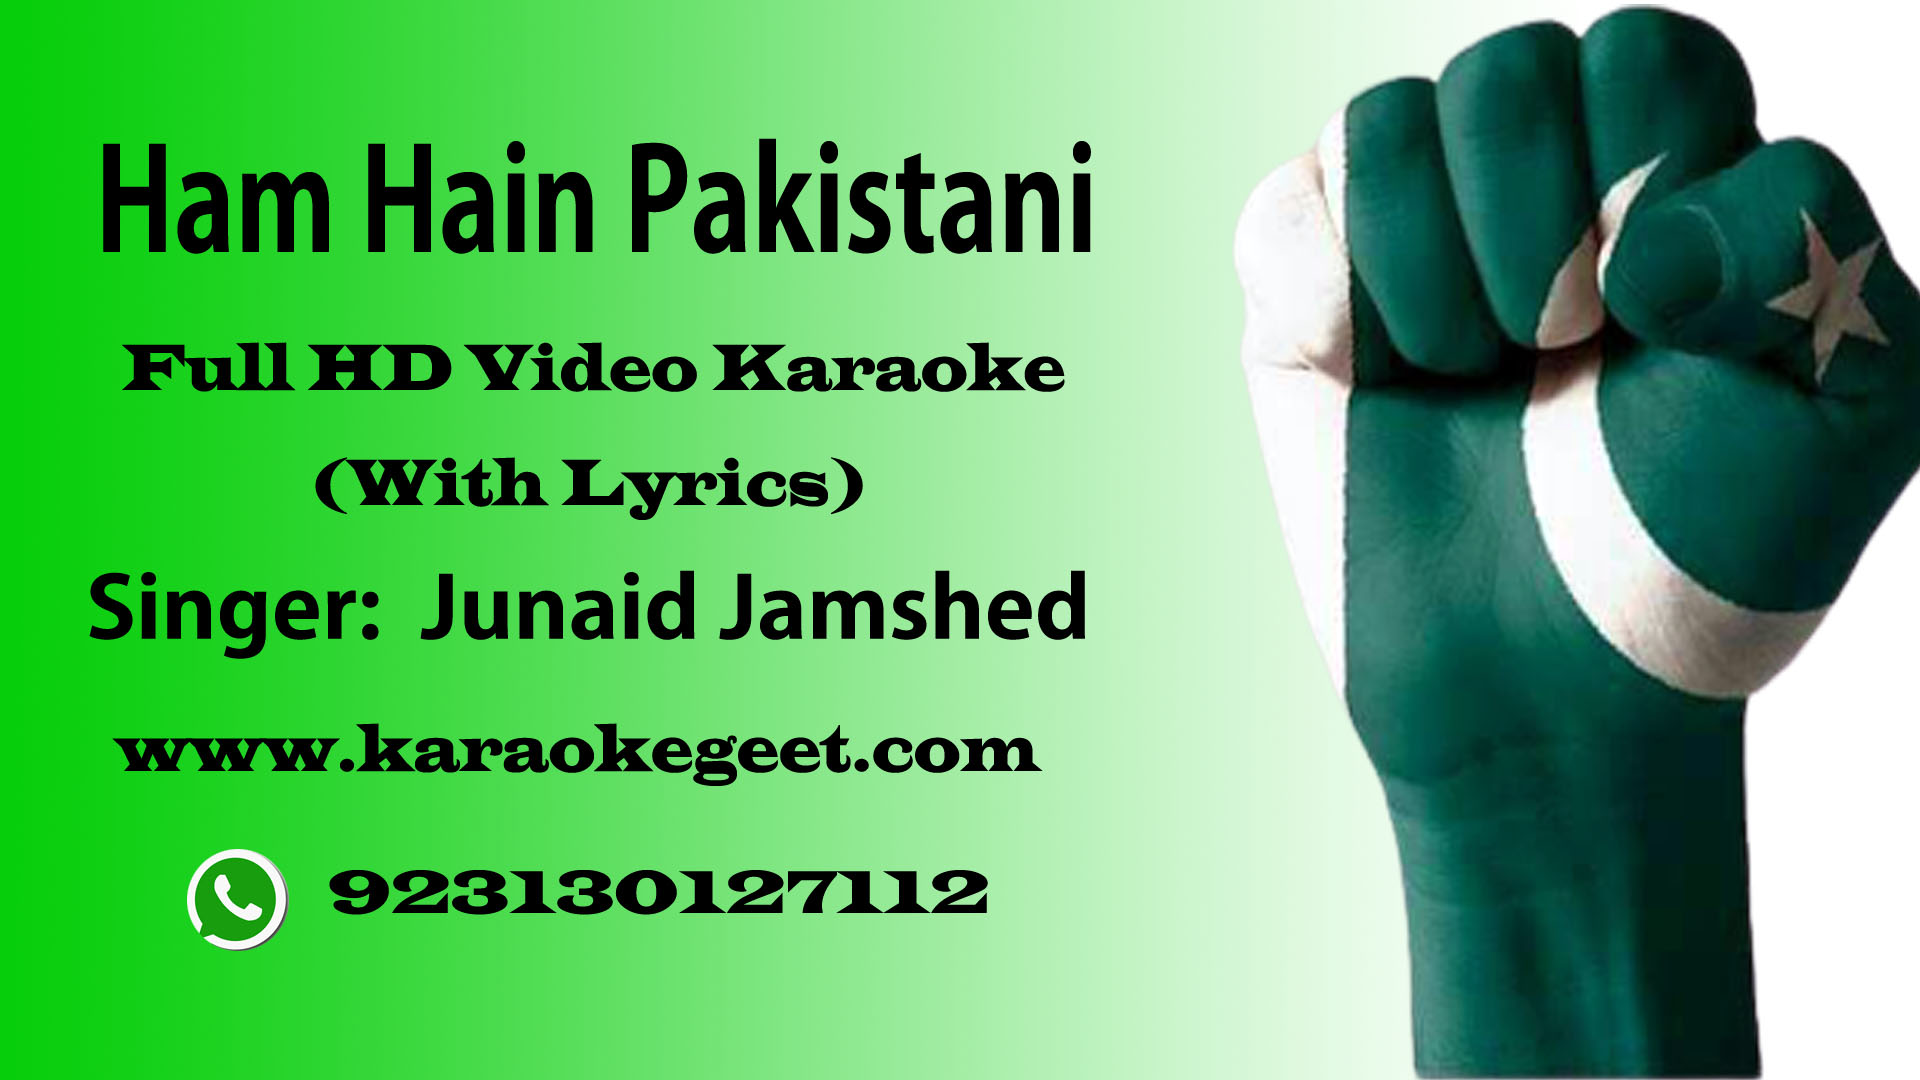 Ham hain Pakistani Video Karaoke